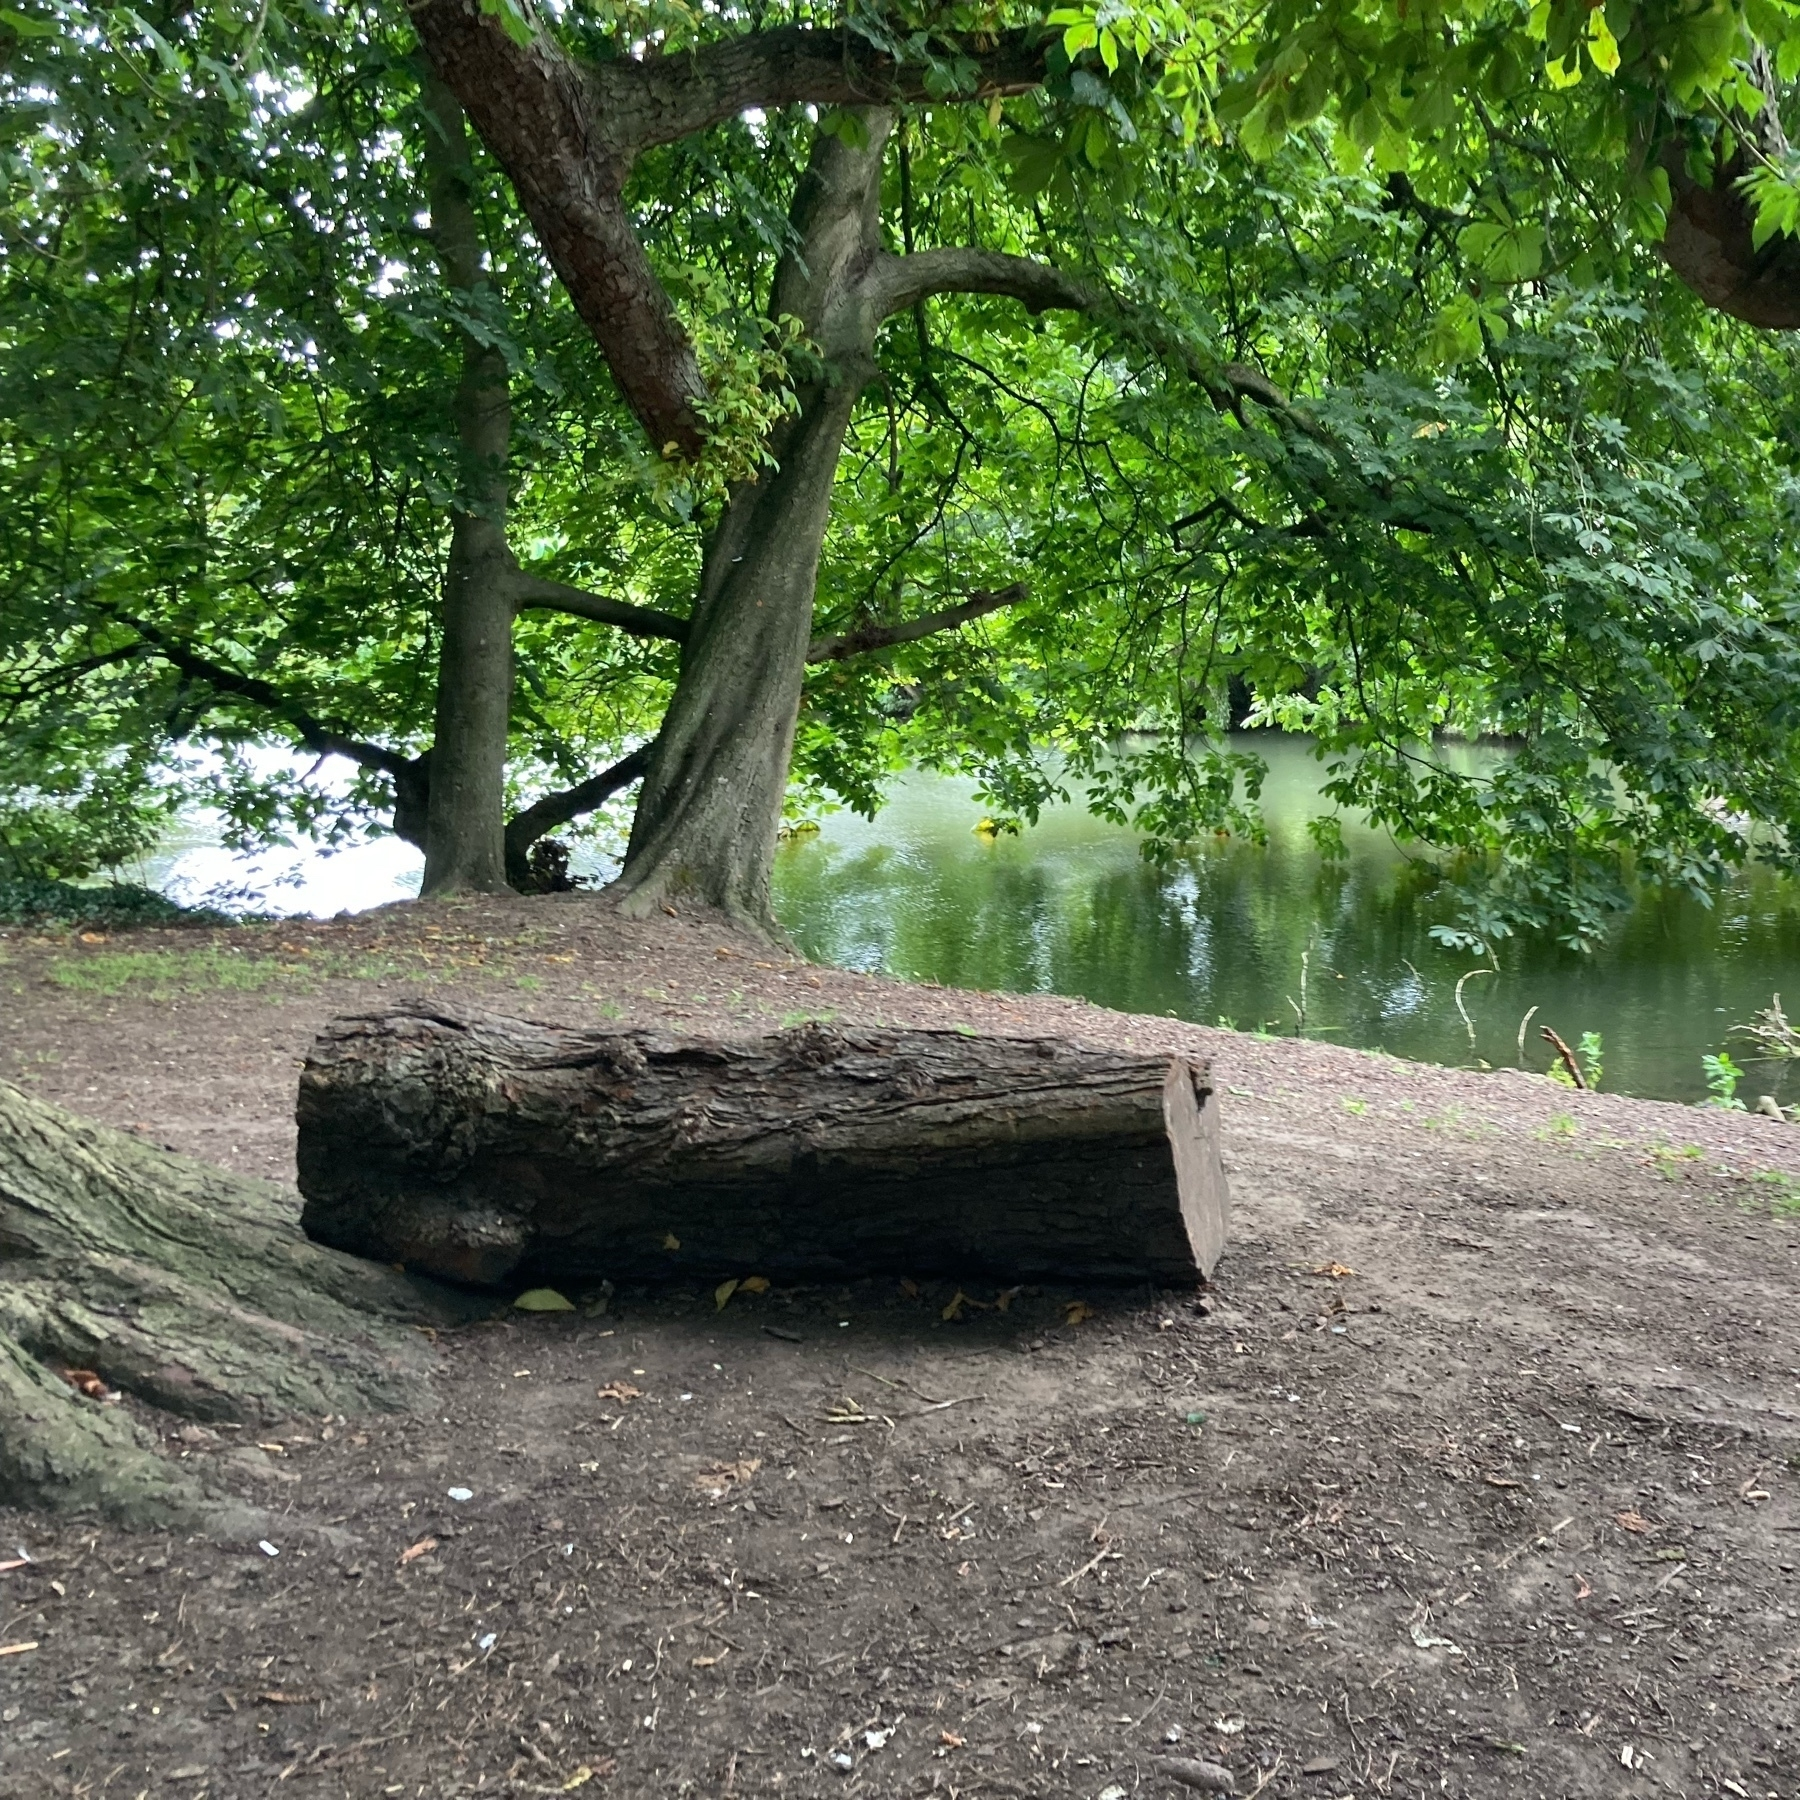 A log on the edge of a pond, surrounded by trees.